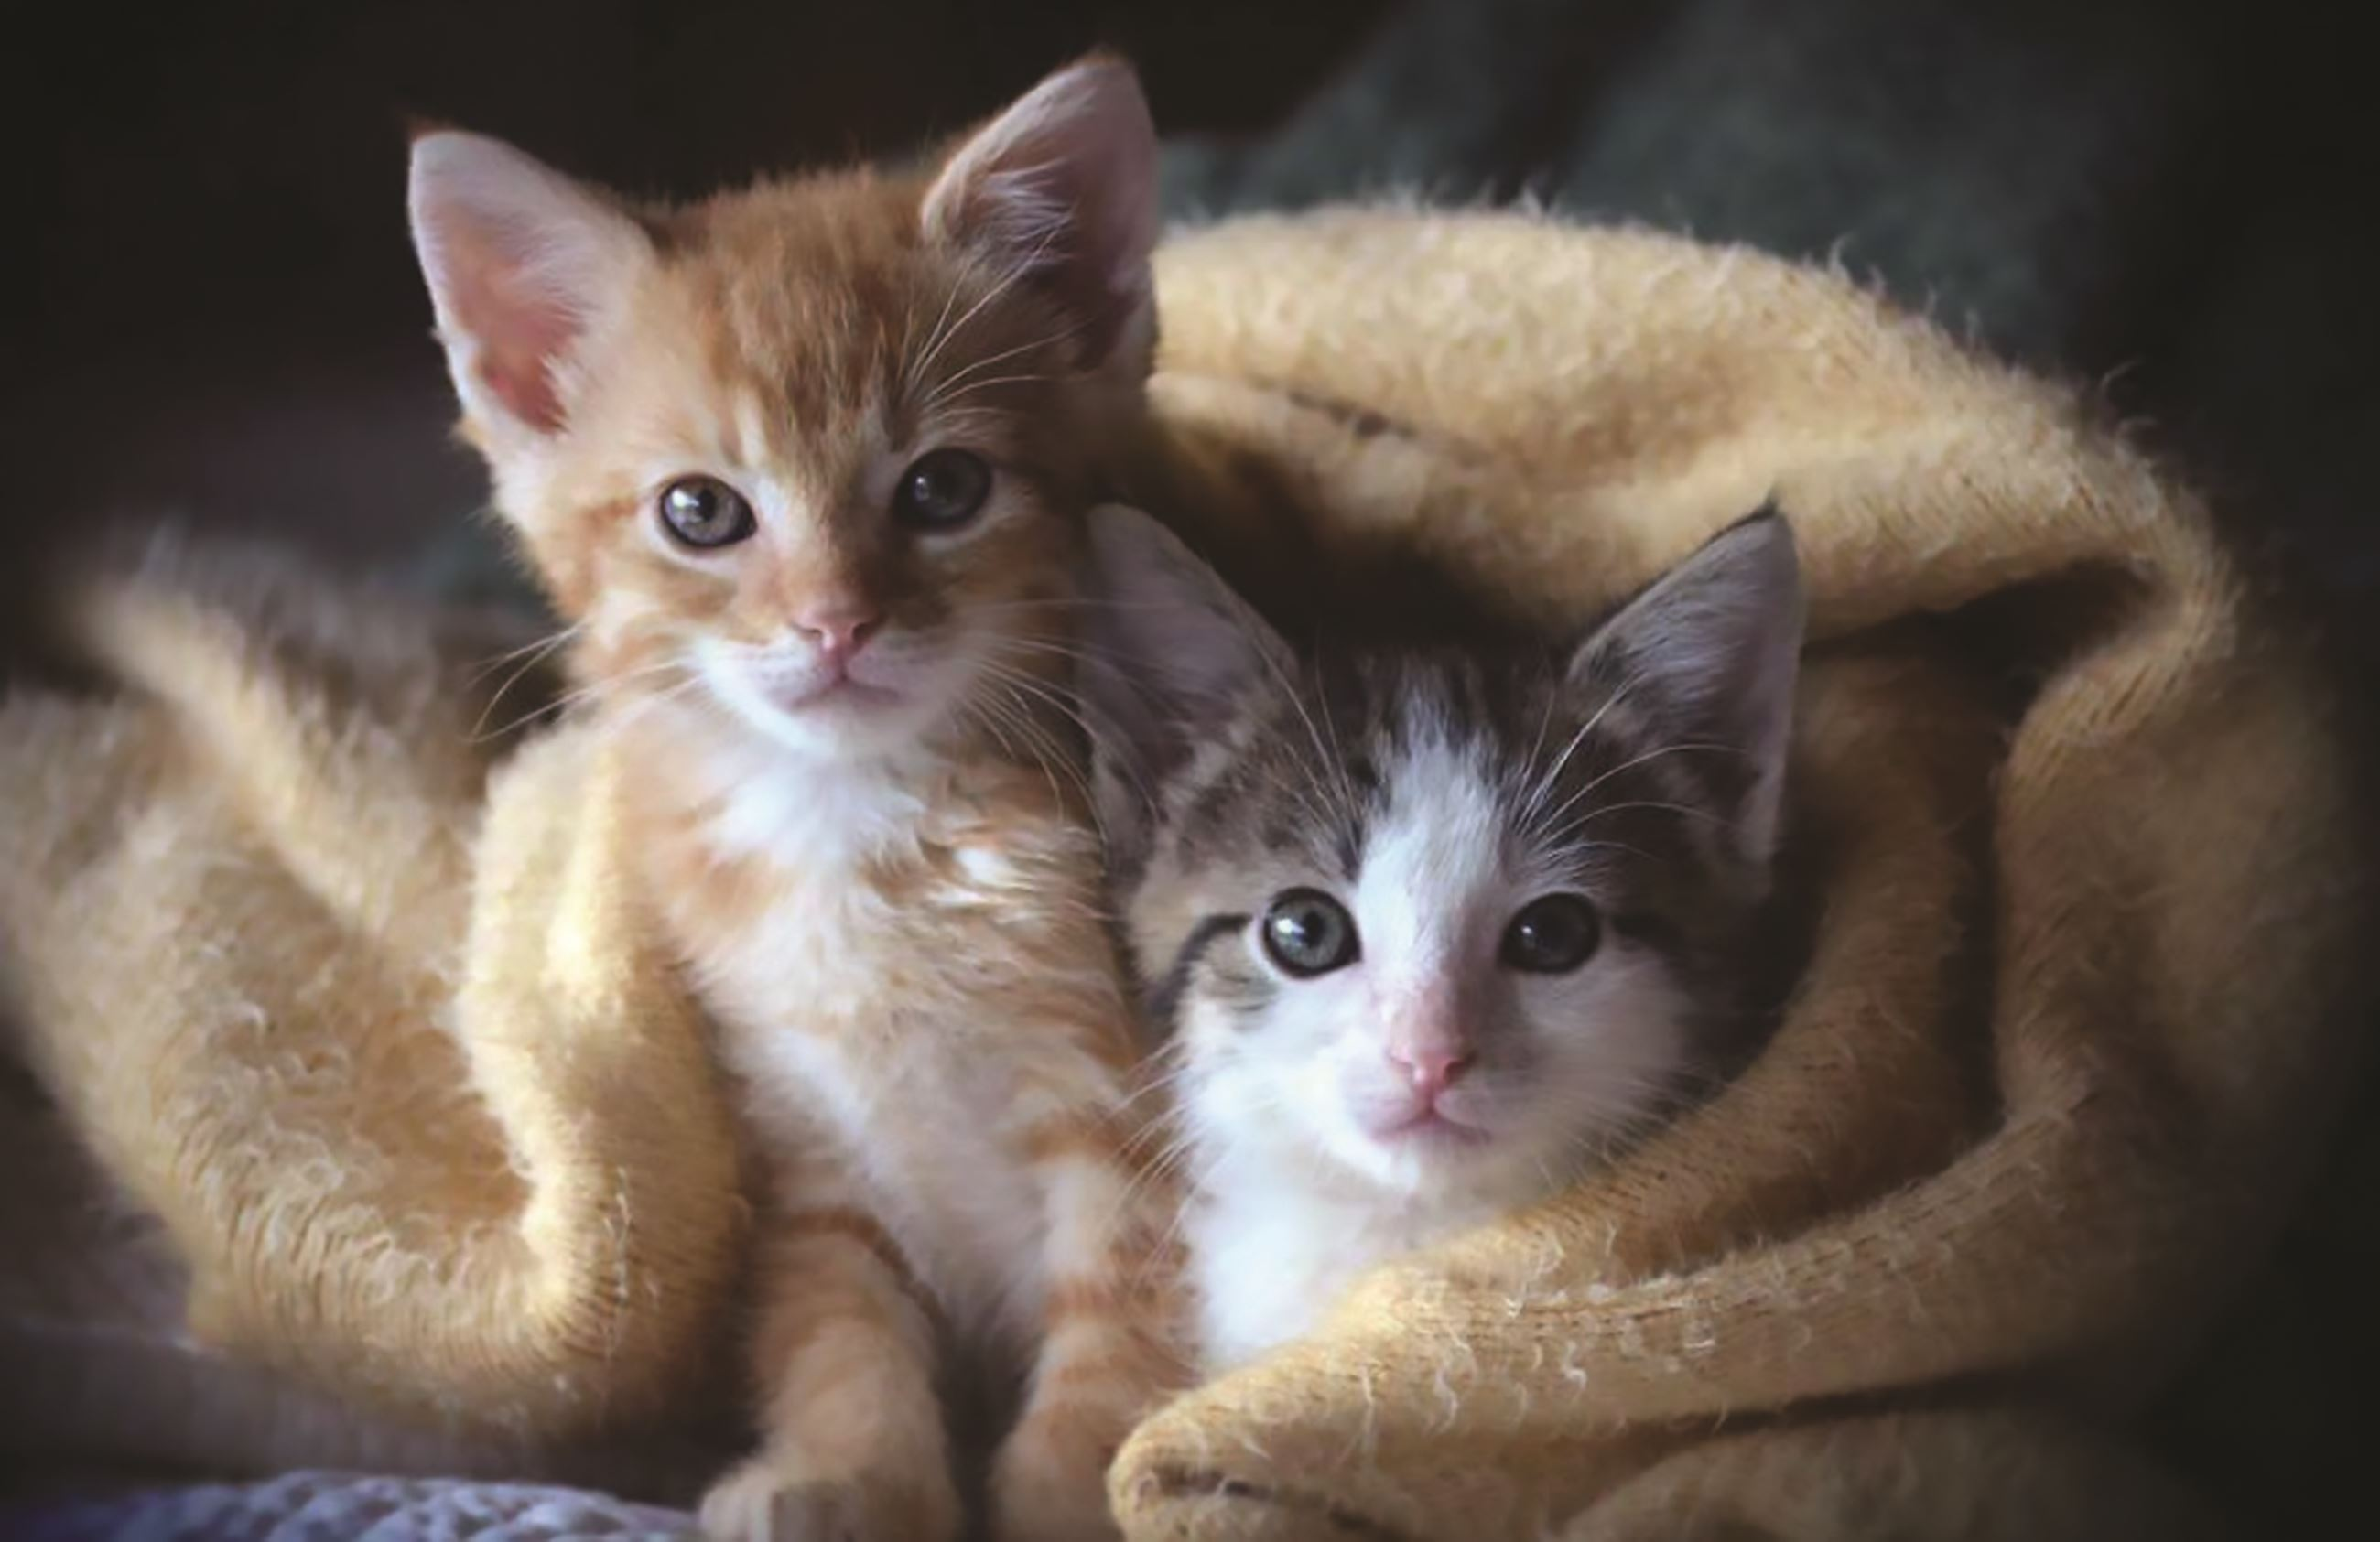 Image of two kittens wrapped in blanket